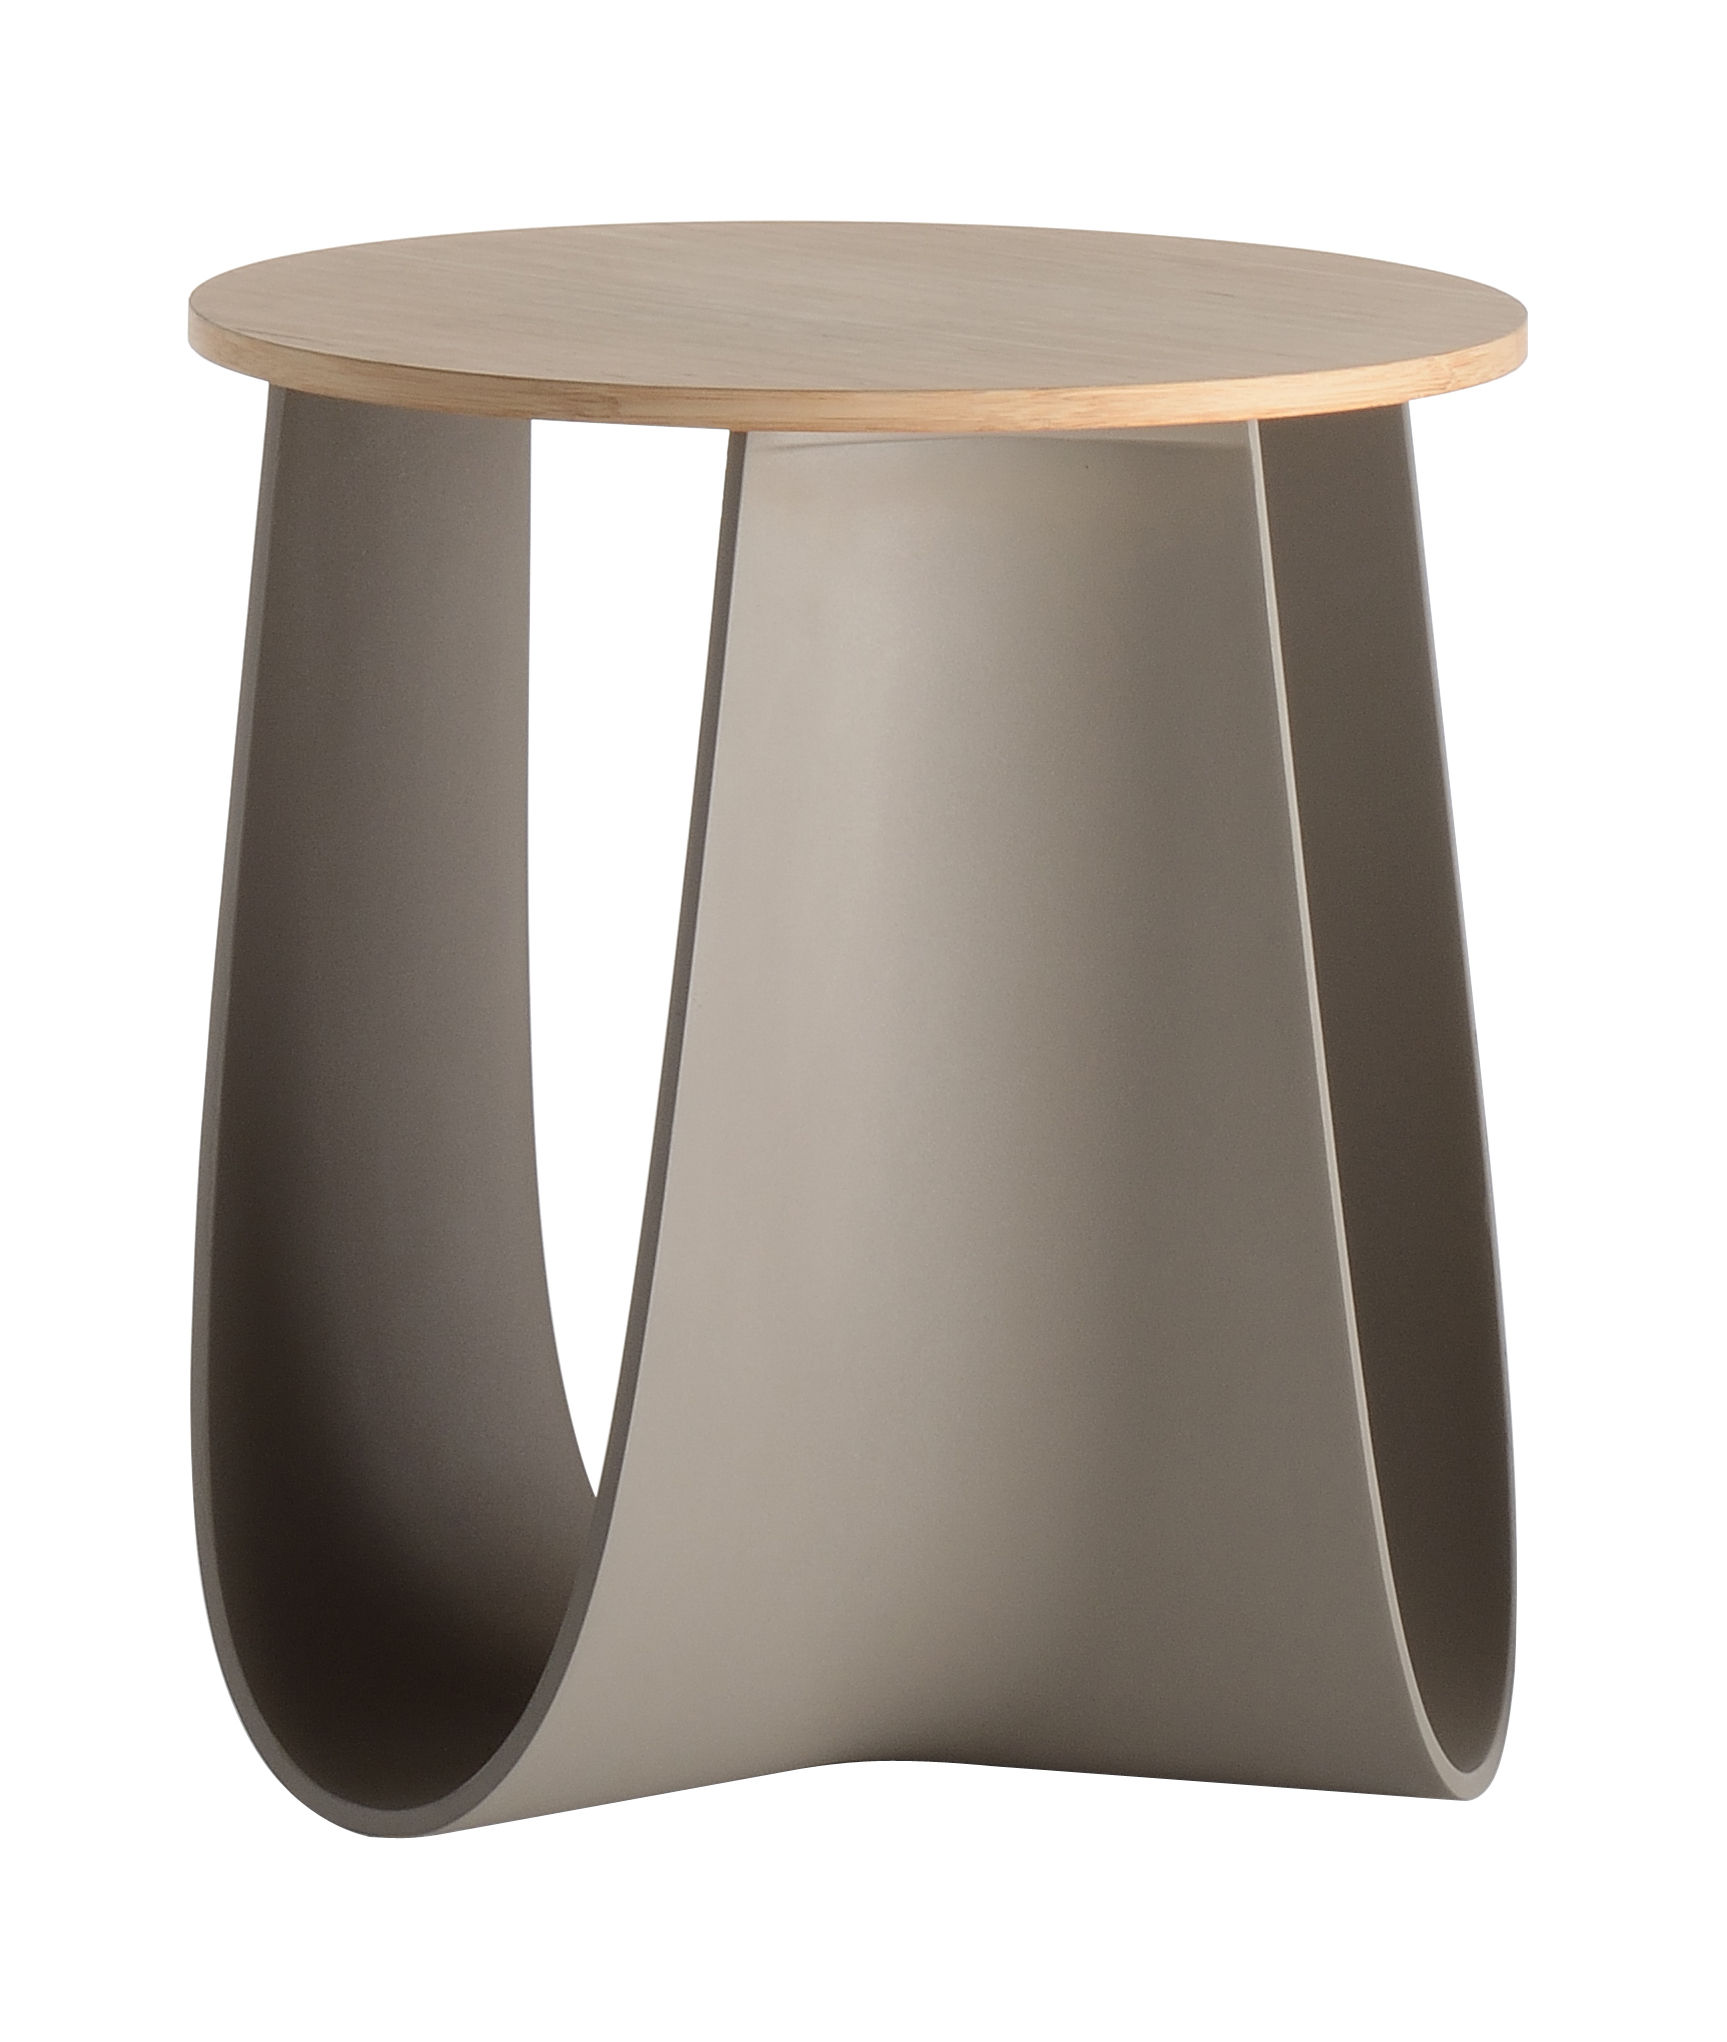 Furniture - Coffee Tables - Sag Stool - Table H 43 cm / Bamboo seat by MDF Italia - Taupe / Bamboo - Bamboo plywood, Polyurethane